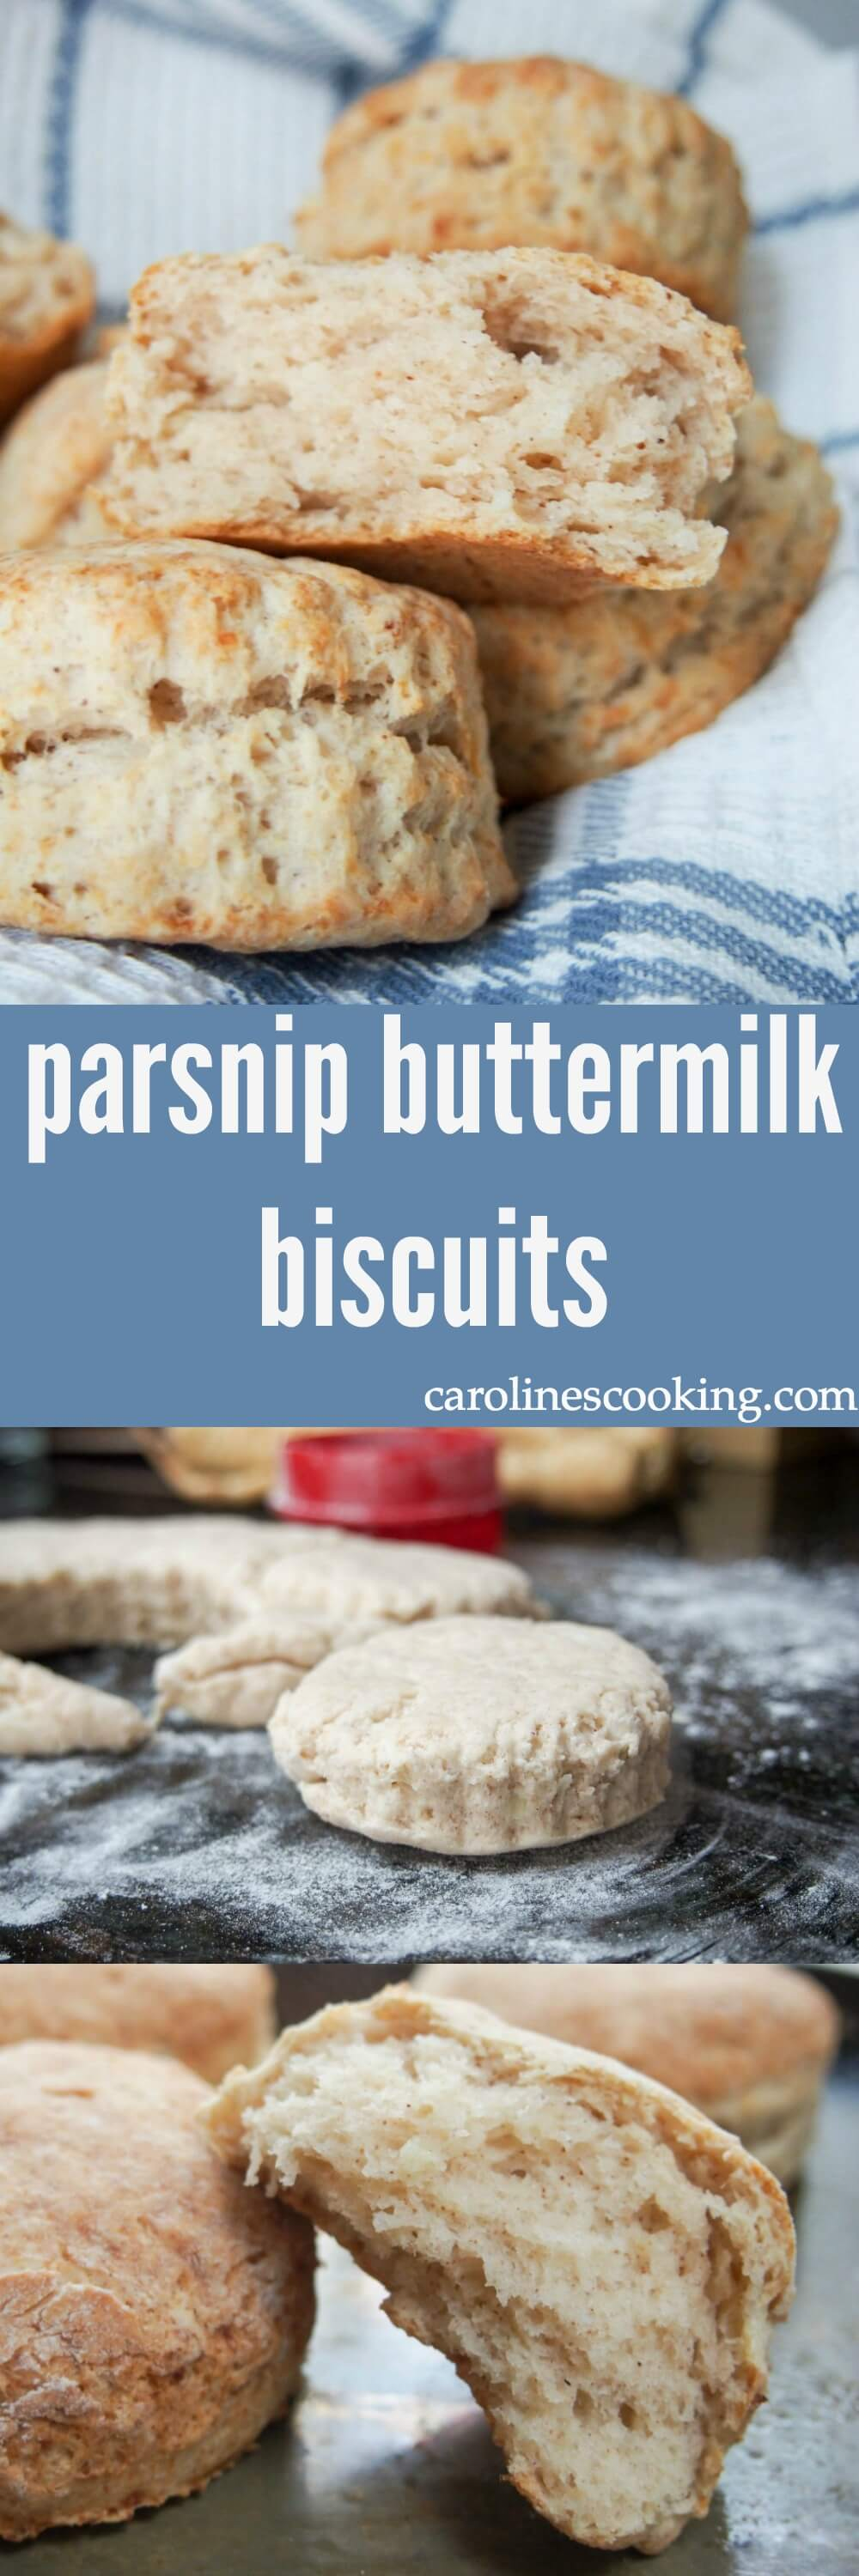 These parsnip buttermilk biscuits are a twist on the more traditional versions. Slightly sweet and fluffy, they go perfectly with Southern food (or just snack on them!).